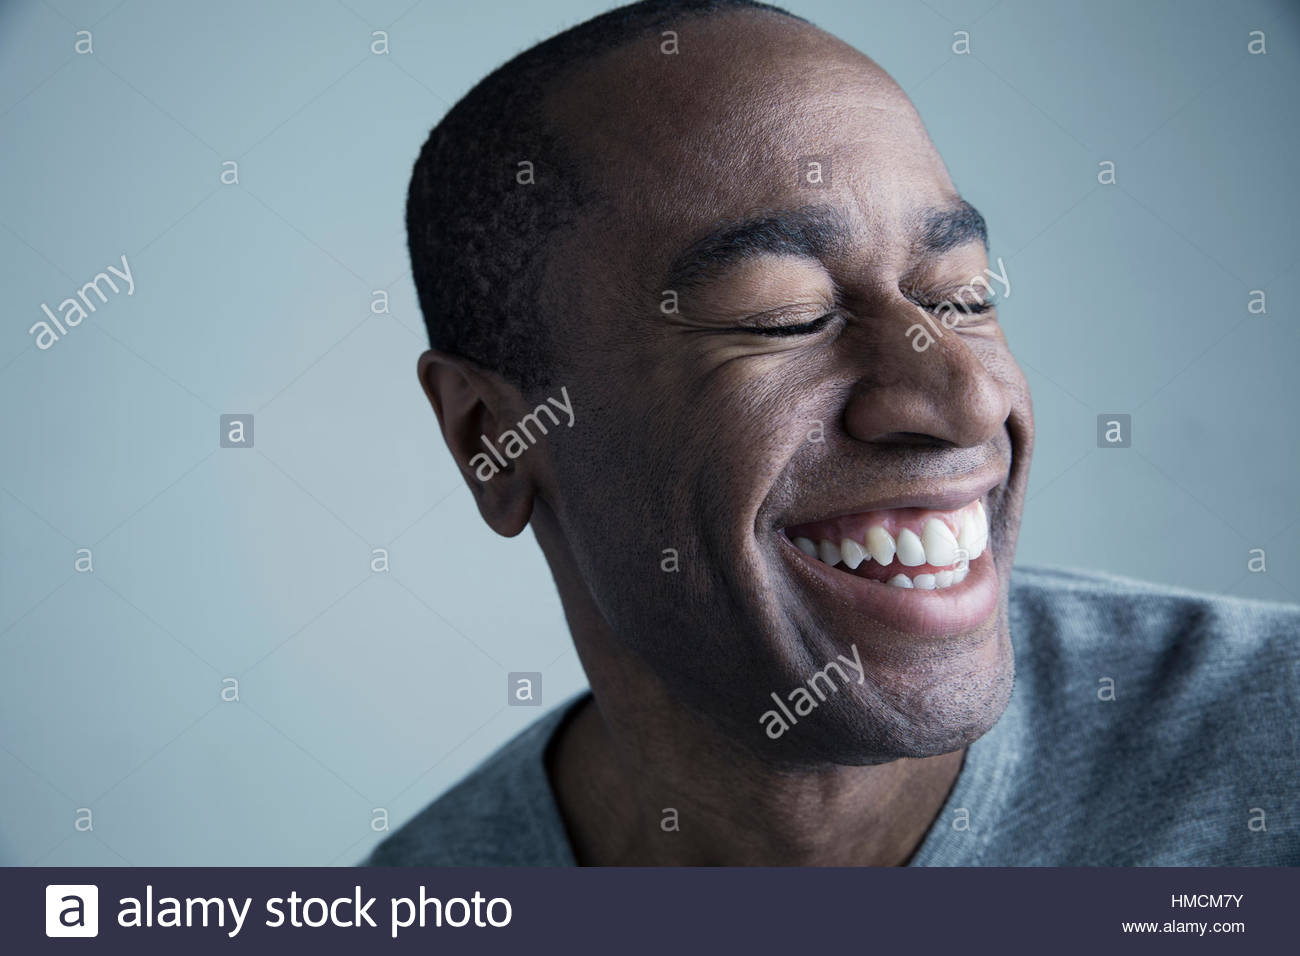 Portrait of African American man smiling with eyes closed Photo Stock